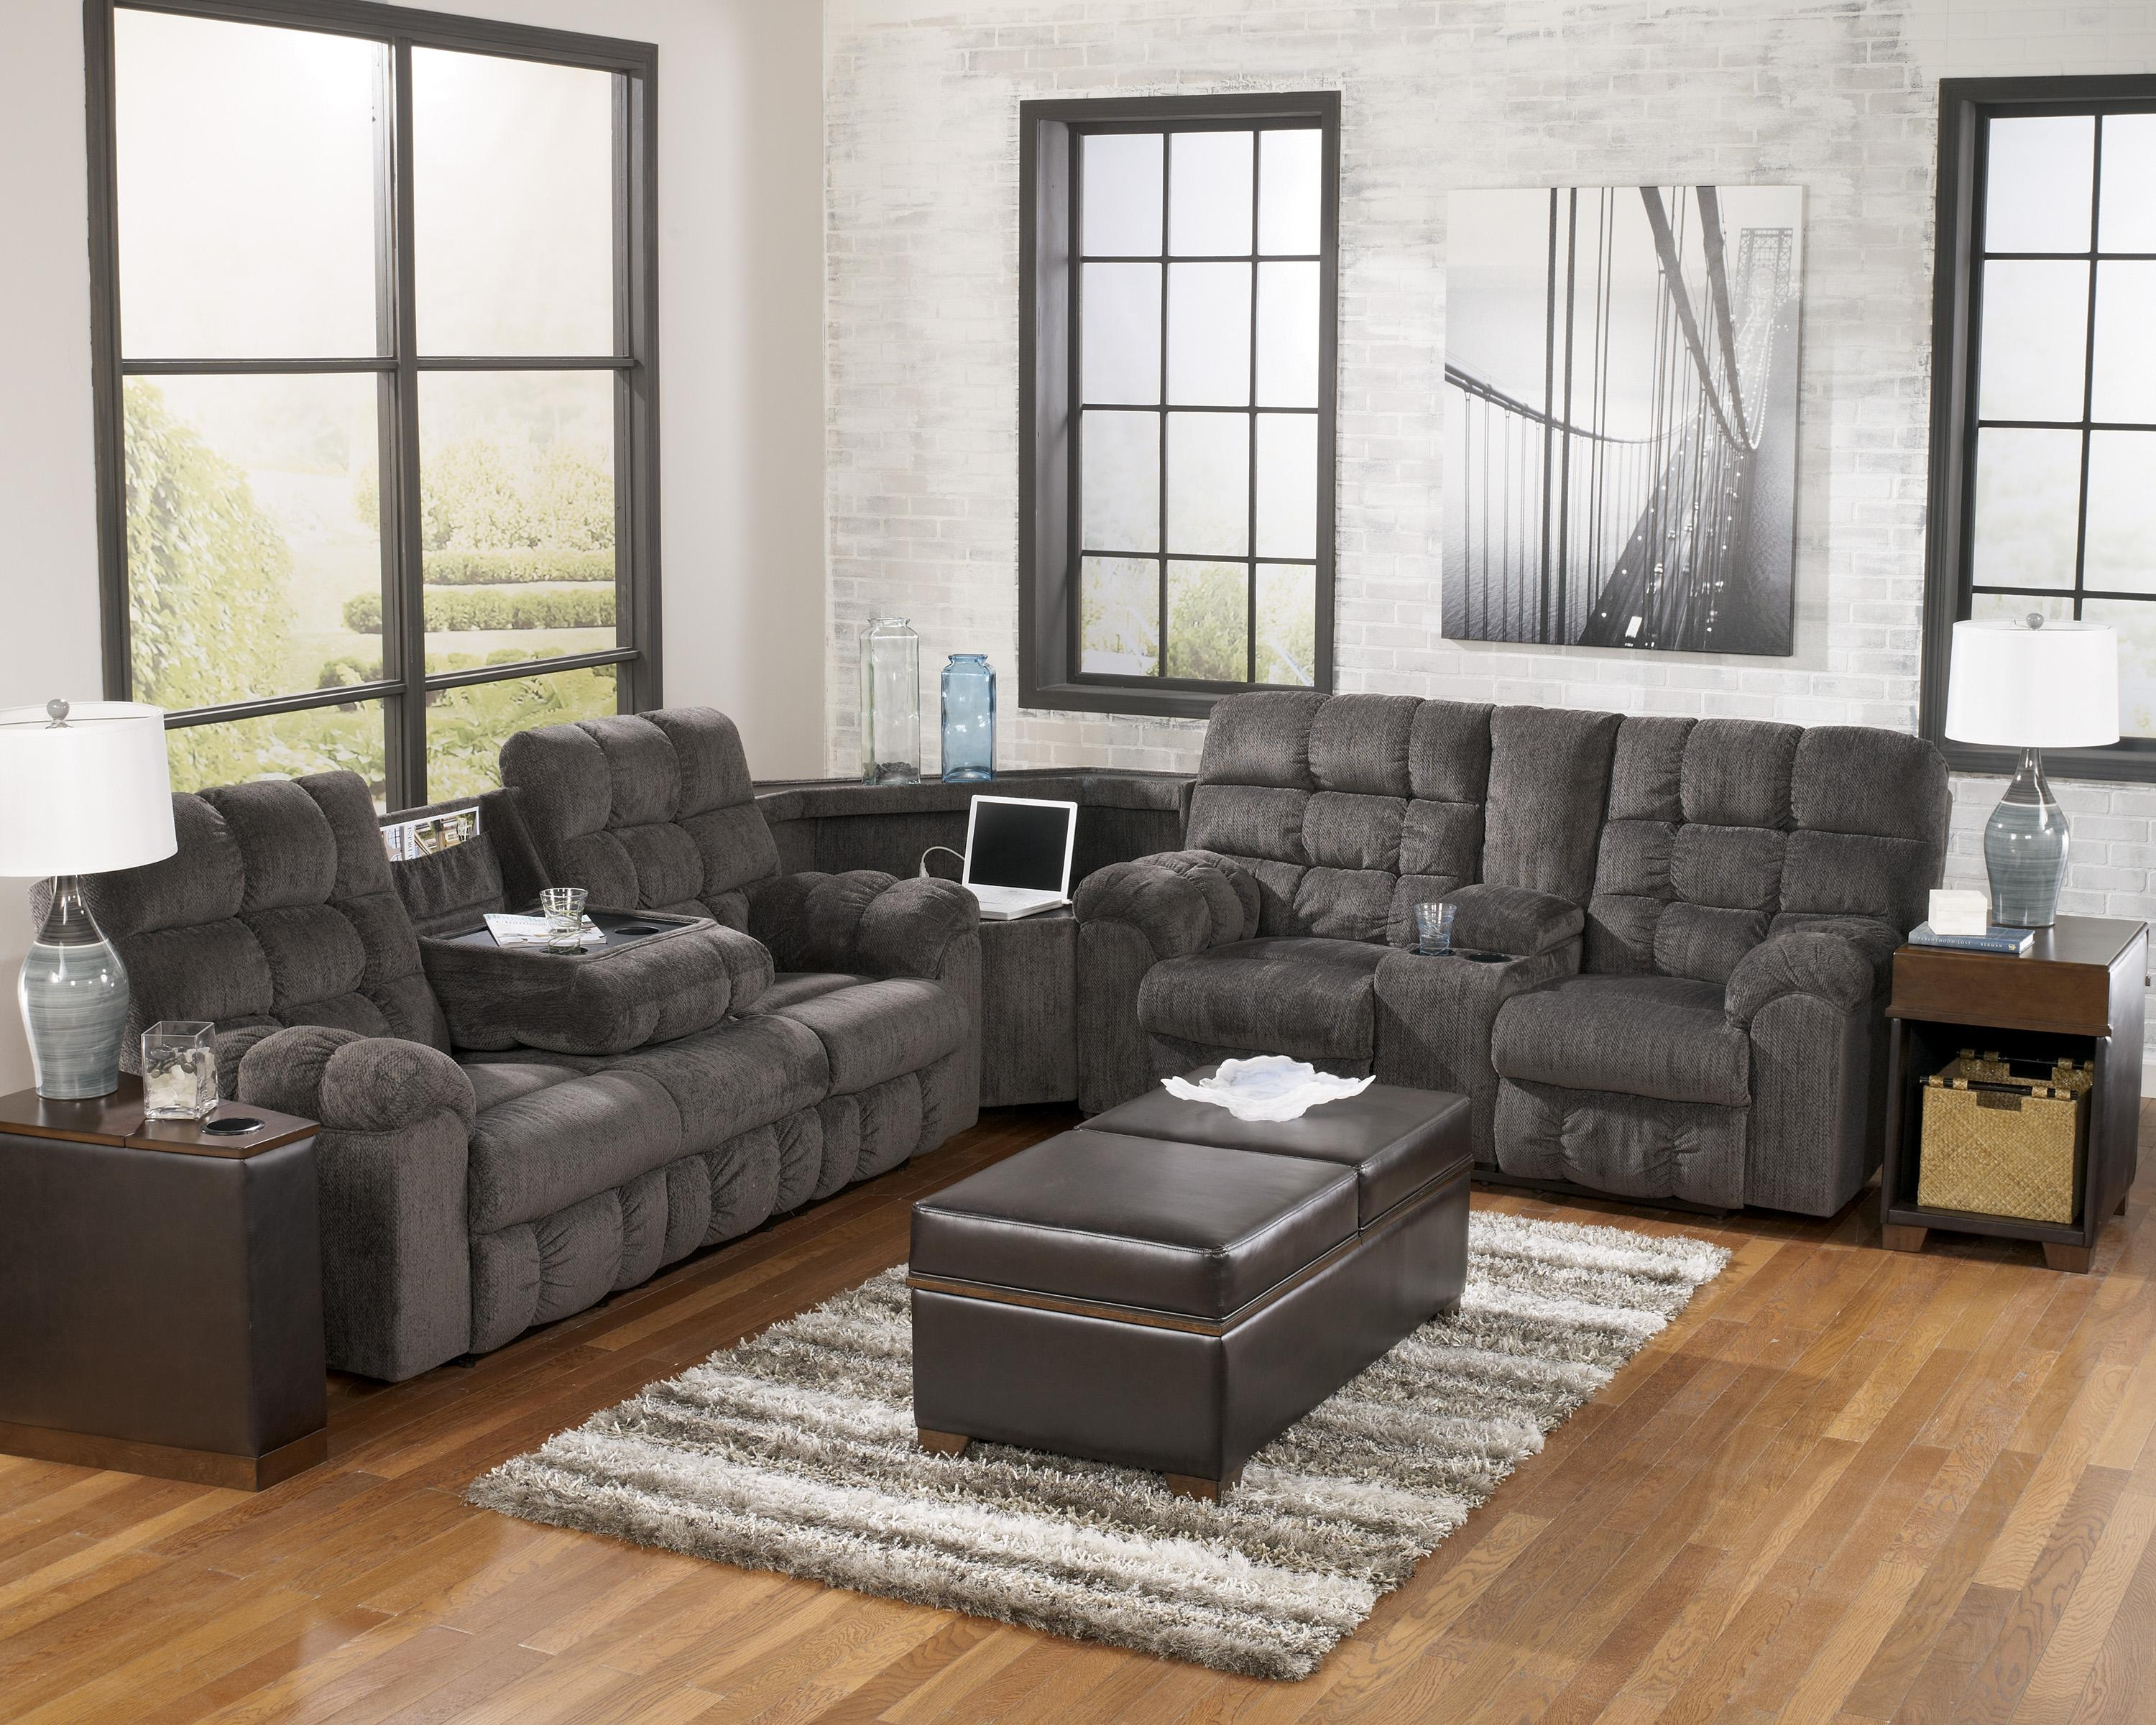 Sofas Center : Ashley Furniture Sectionals Sectional Couch Gray Intended For Ashley Furniture Corduroy Sectional Sofas (Image 15 of 20)